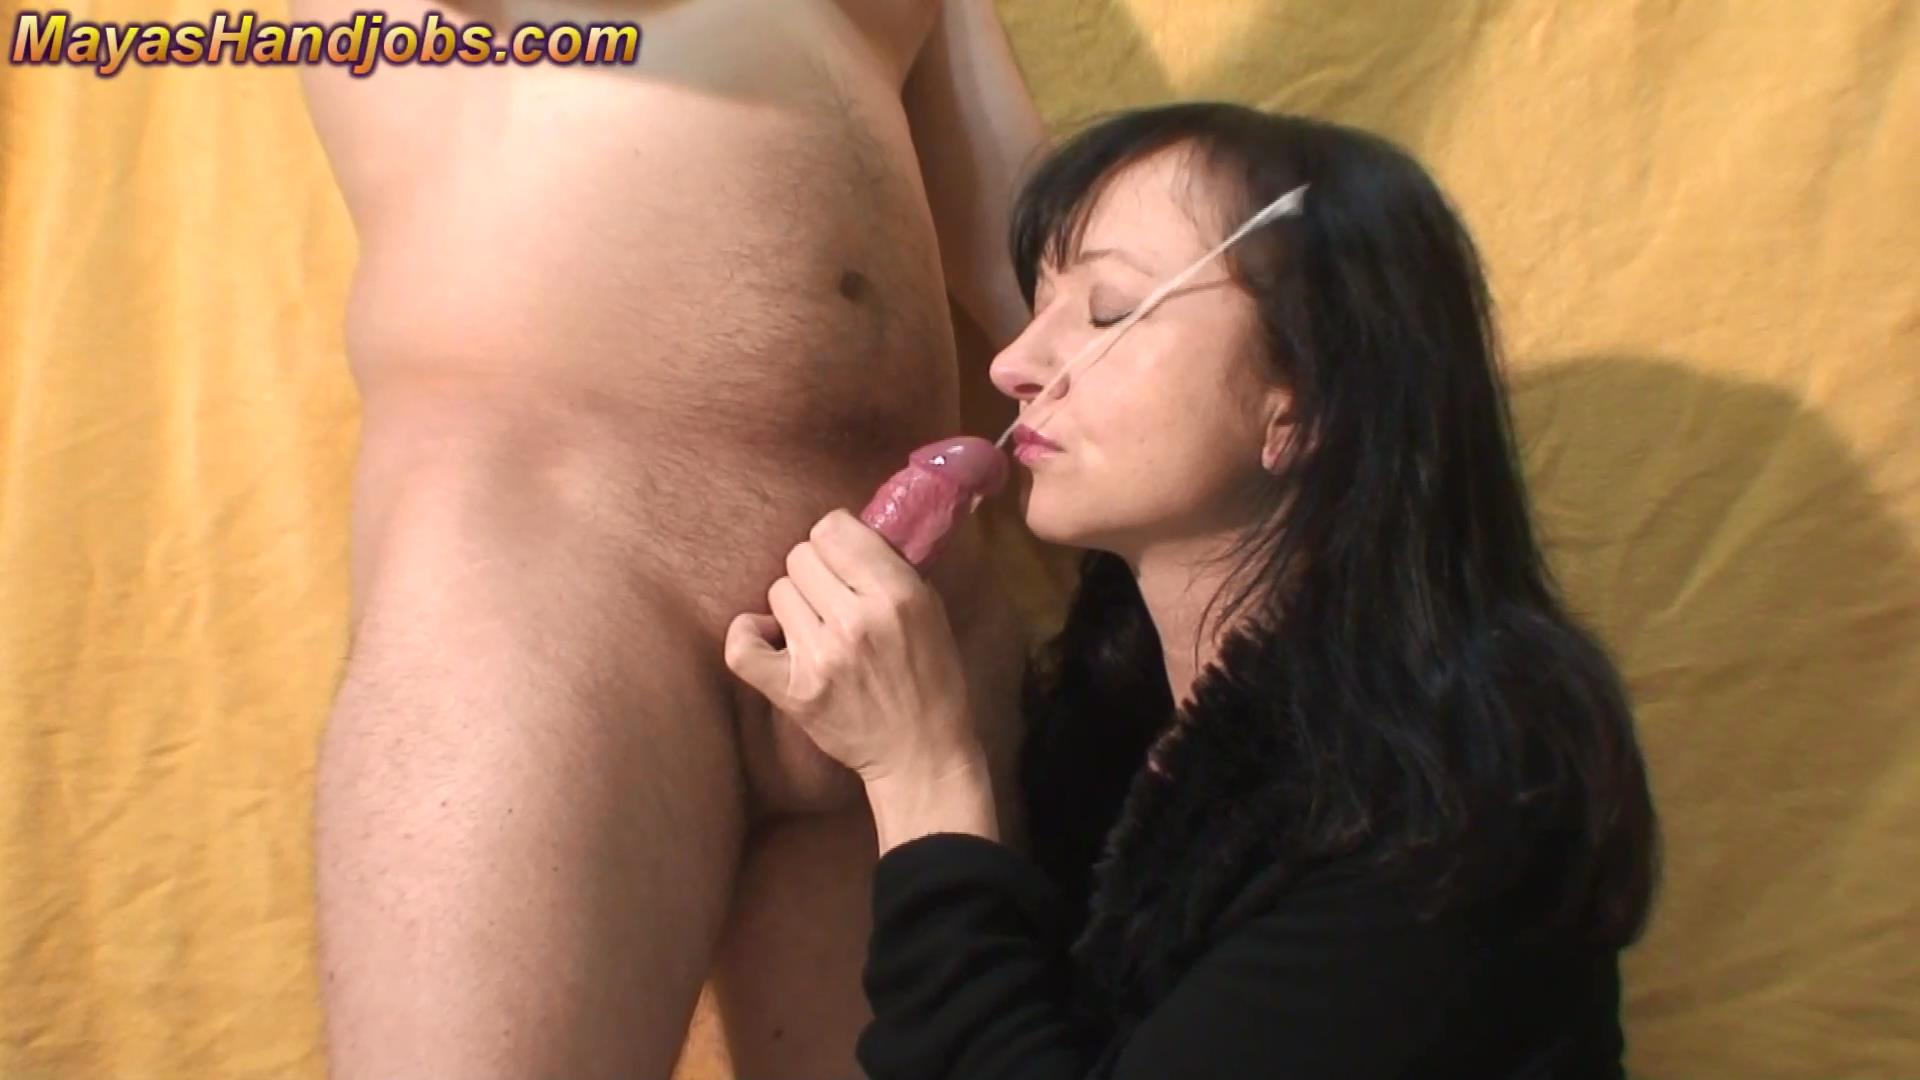 Mistress Maya In Scene: Awesome and incredible huge cumshot into face - MAYASHANDJOBS - FULL HD/1080p/MP4